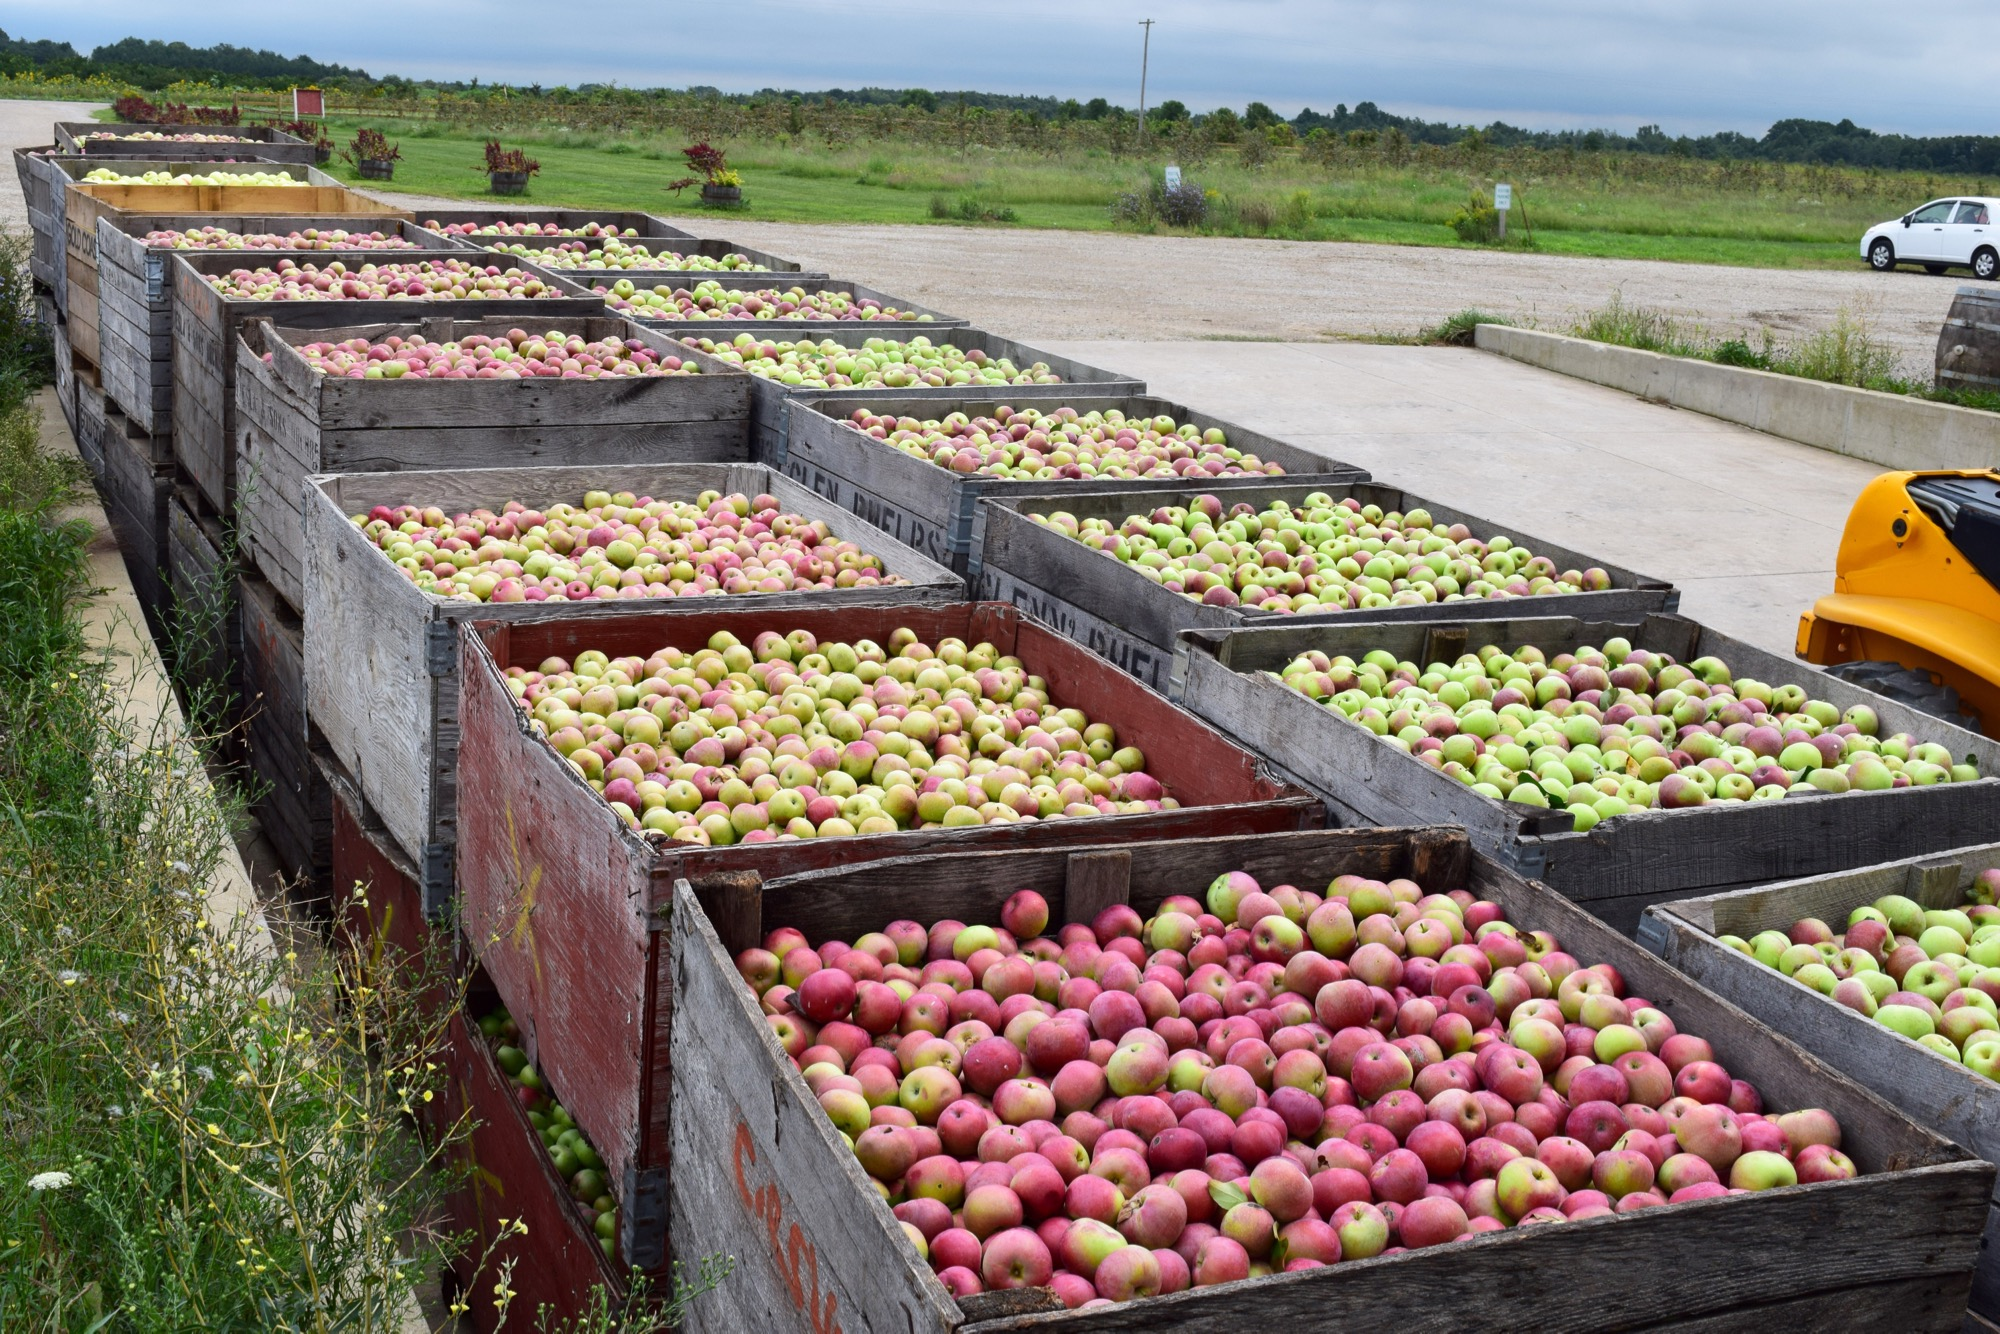 The subtle aroma of fresh apples permeates the air, and it hits you before you see the apples.